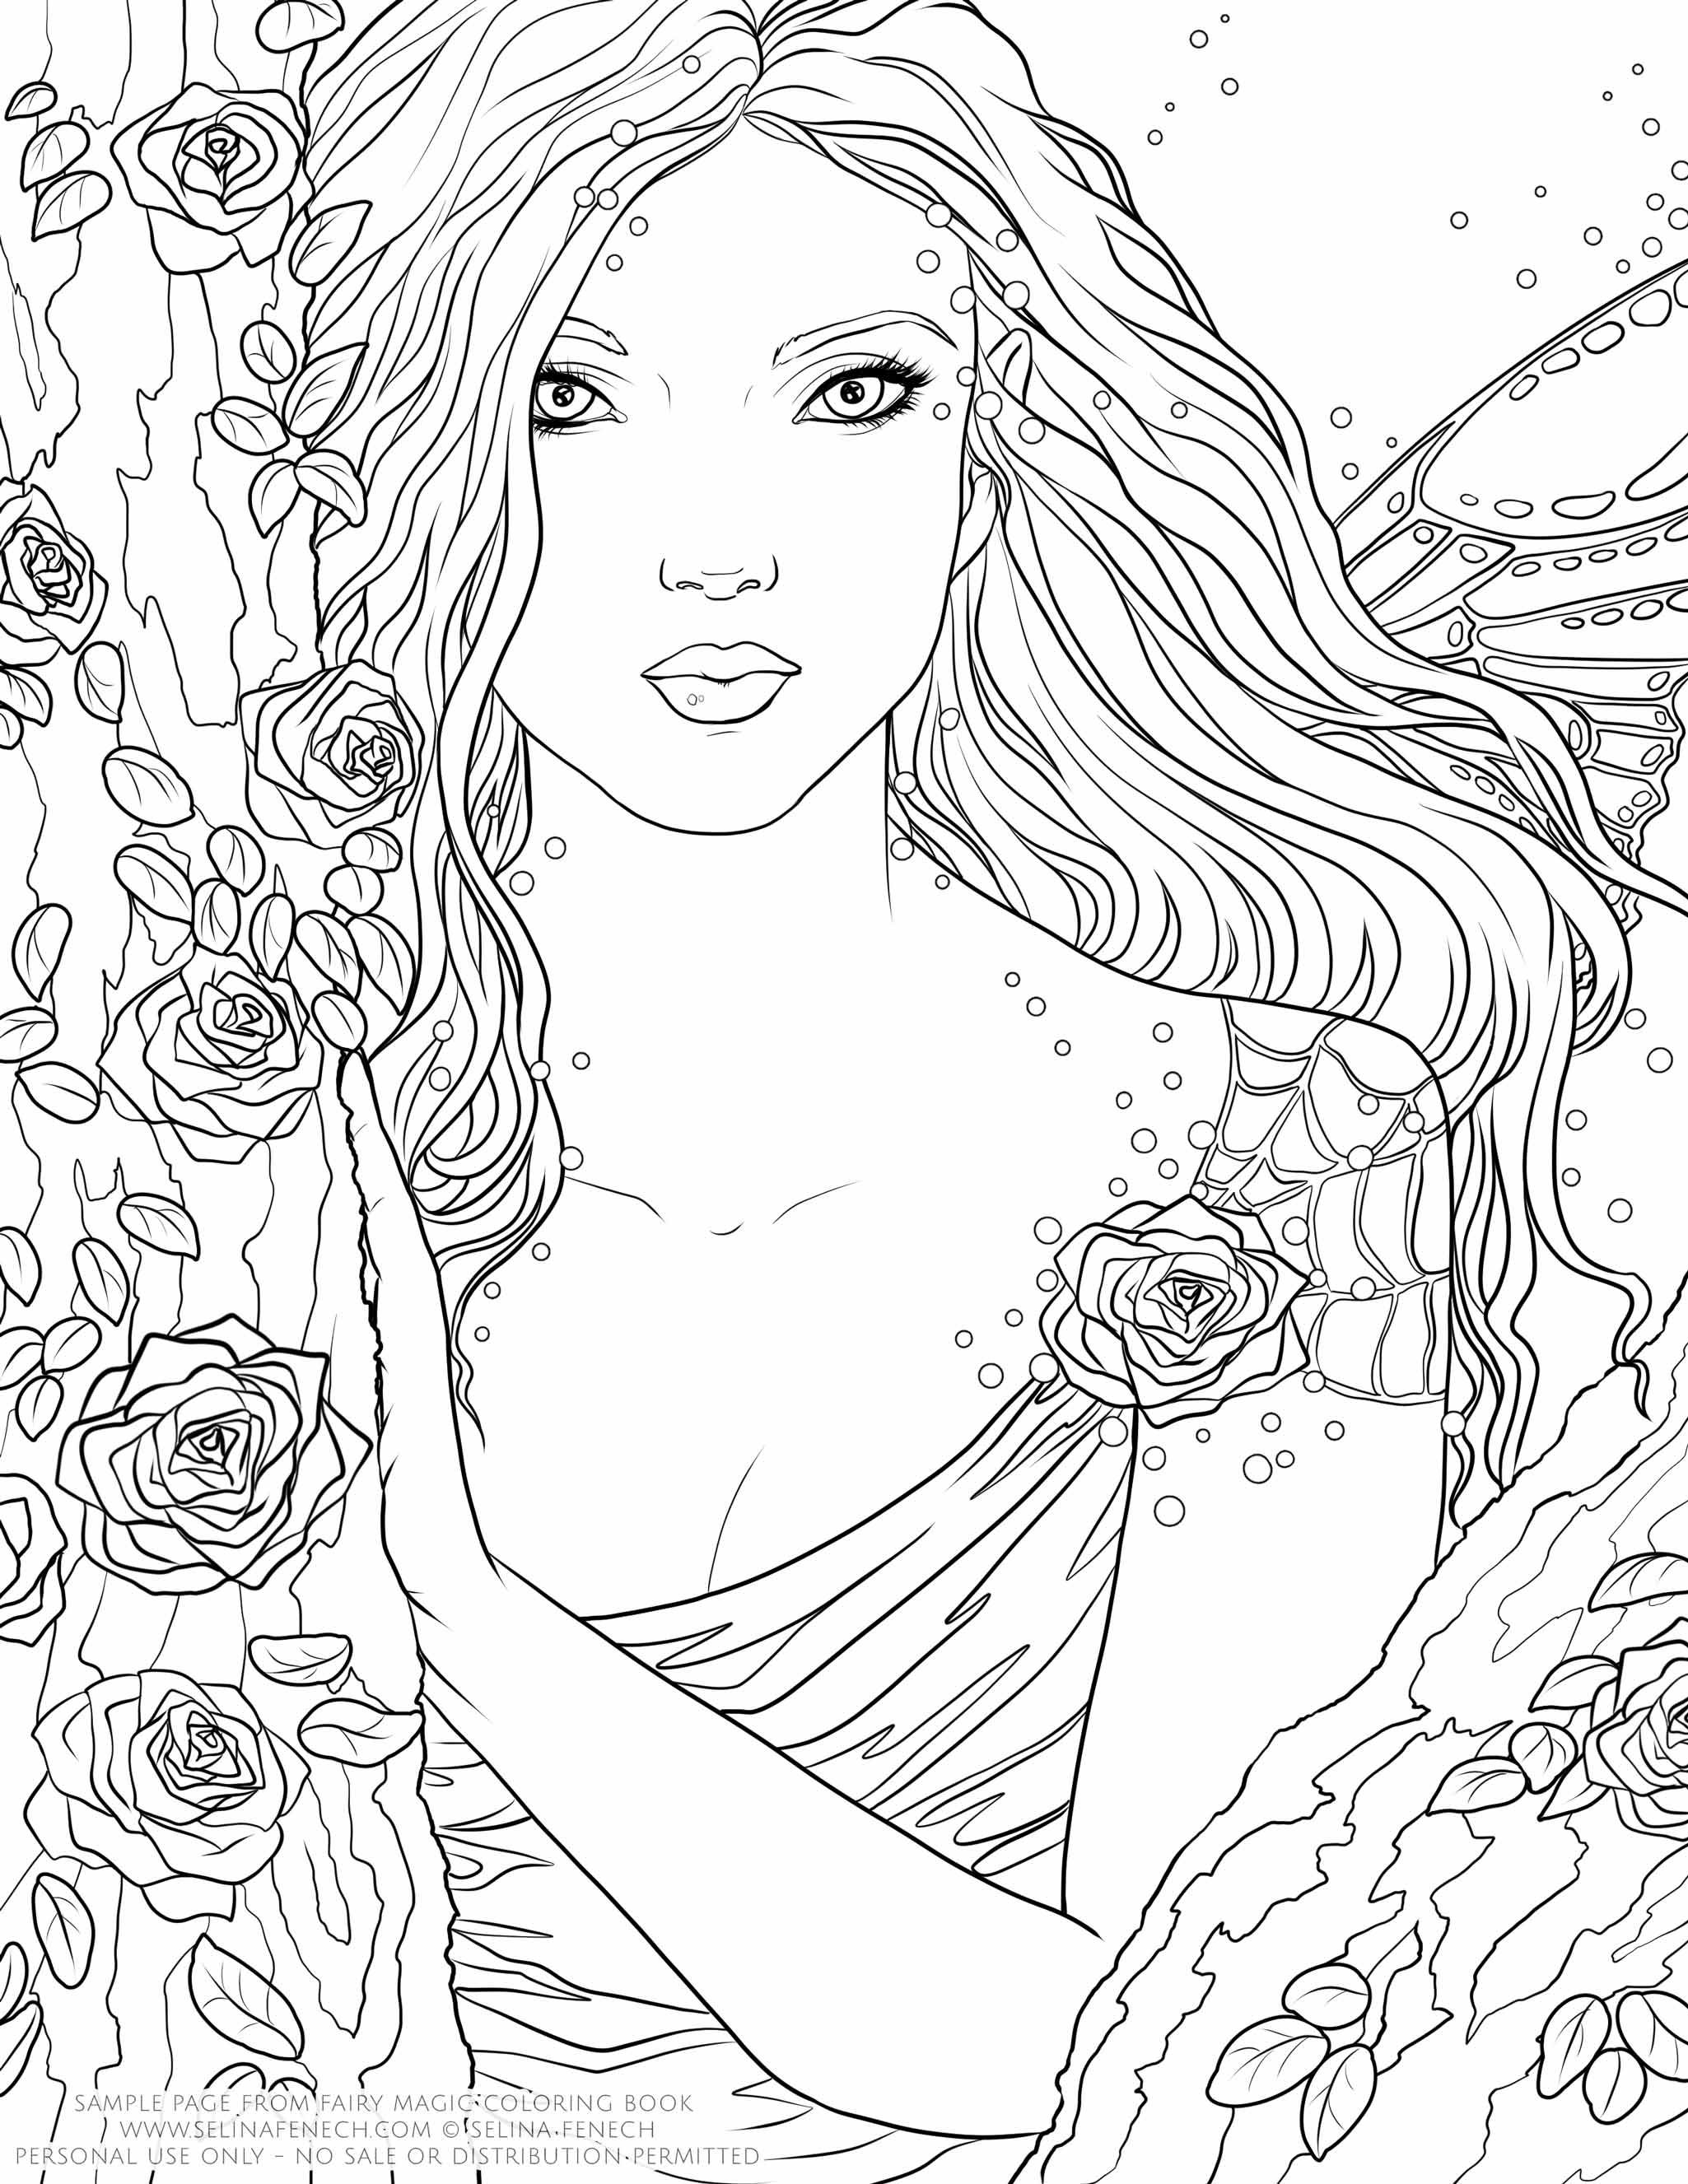 Pin By Erica Nicole On Color Me Crazy Fairy Coloring Coloring